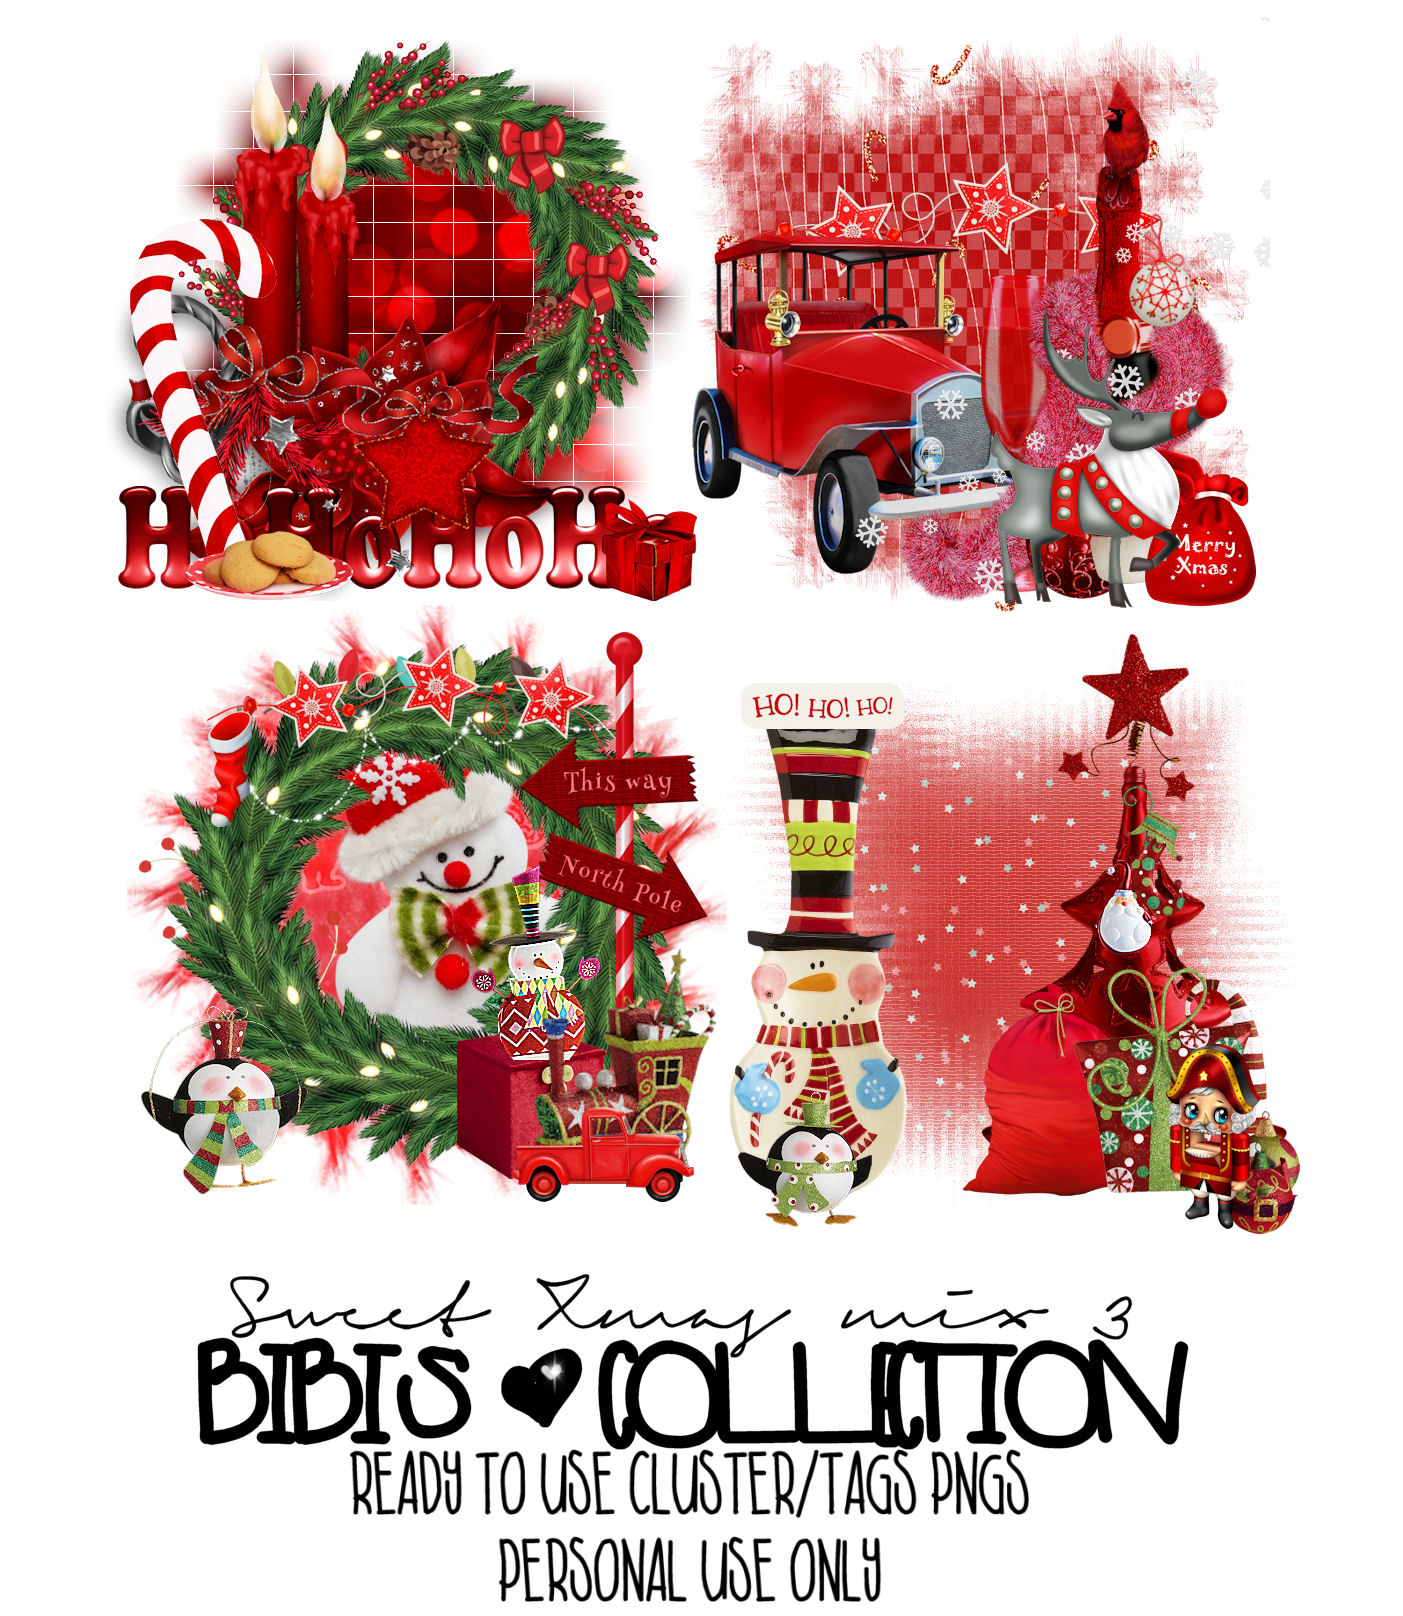 SWEET XMAS MIX 3 READY CLSUTER TAGS PNG